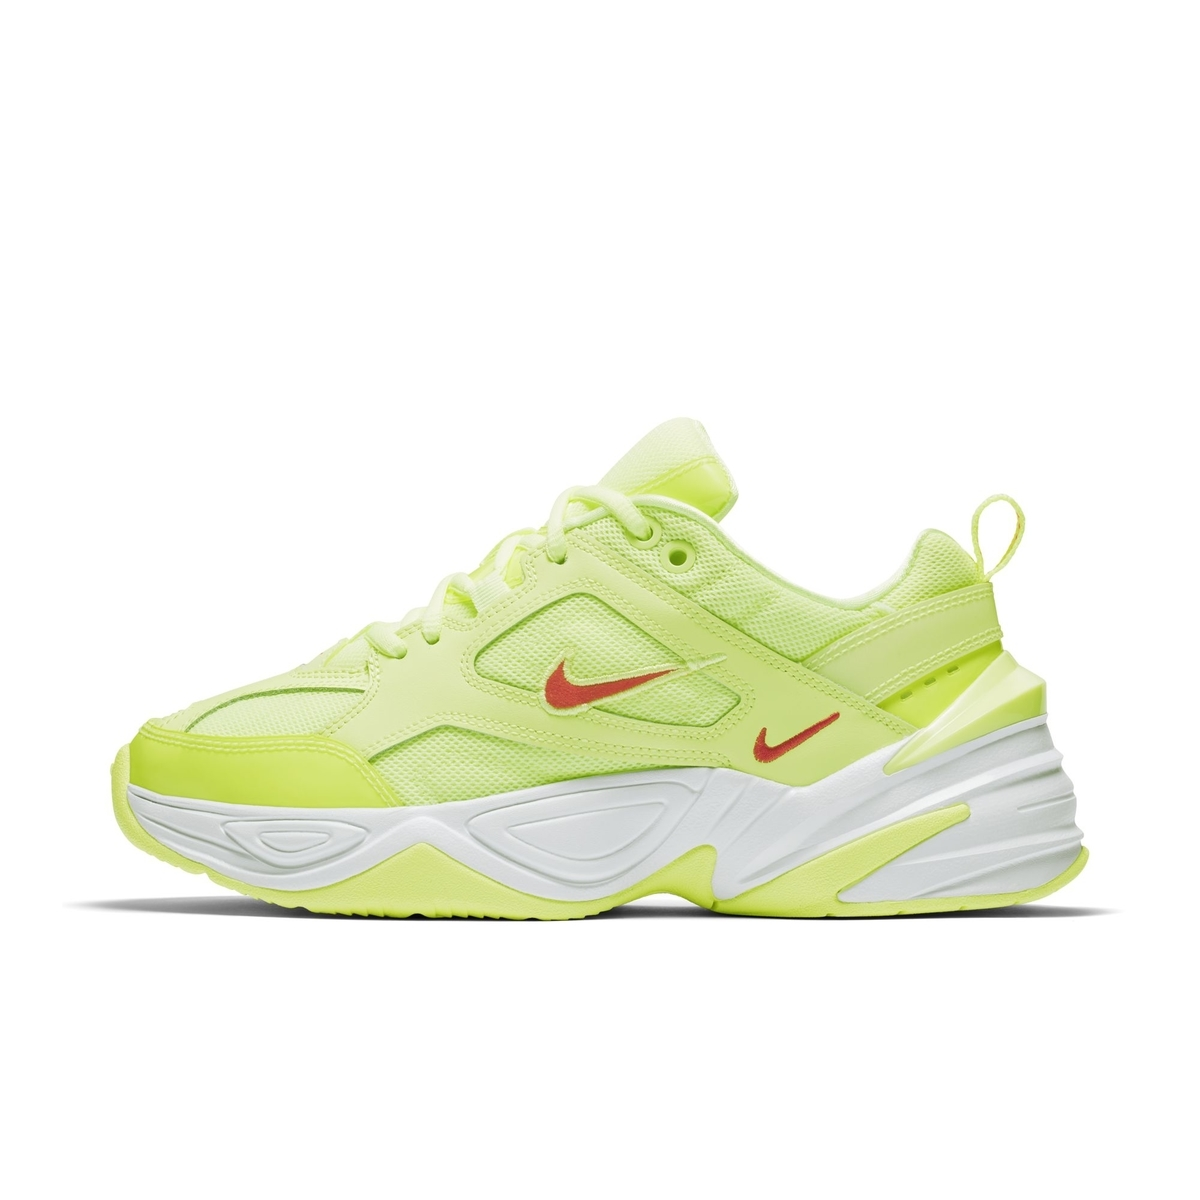 NIKE M2K TEKNO BARELY VOLT:WHITE:RED ORBIT 3